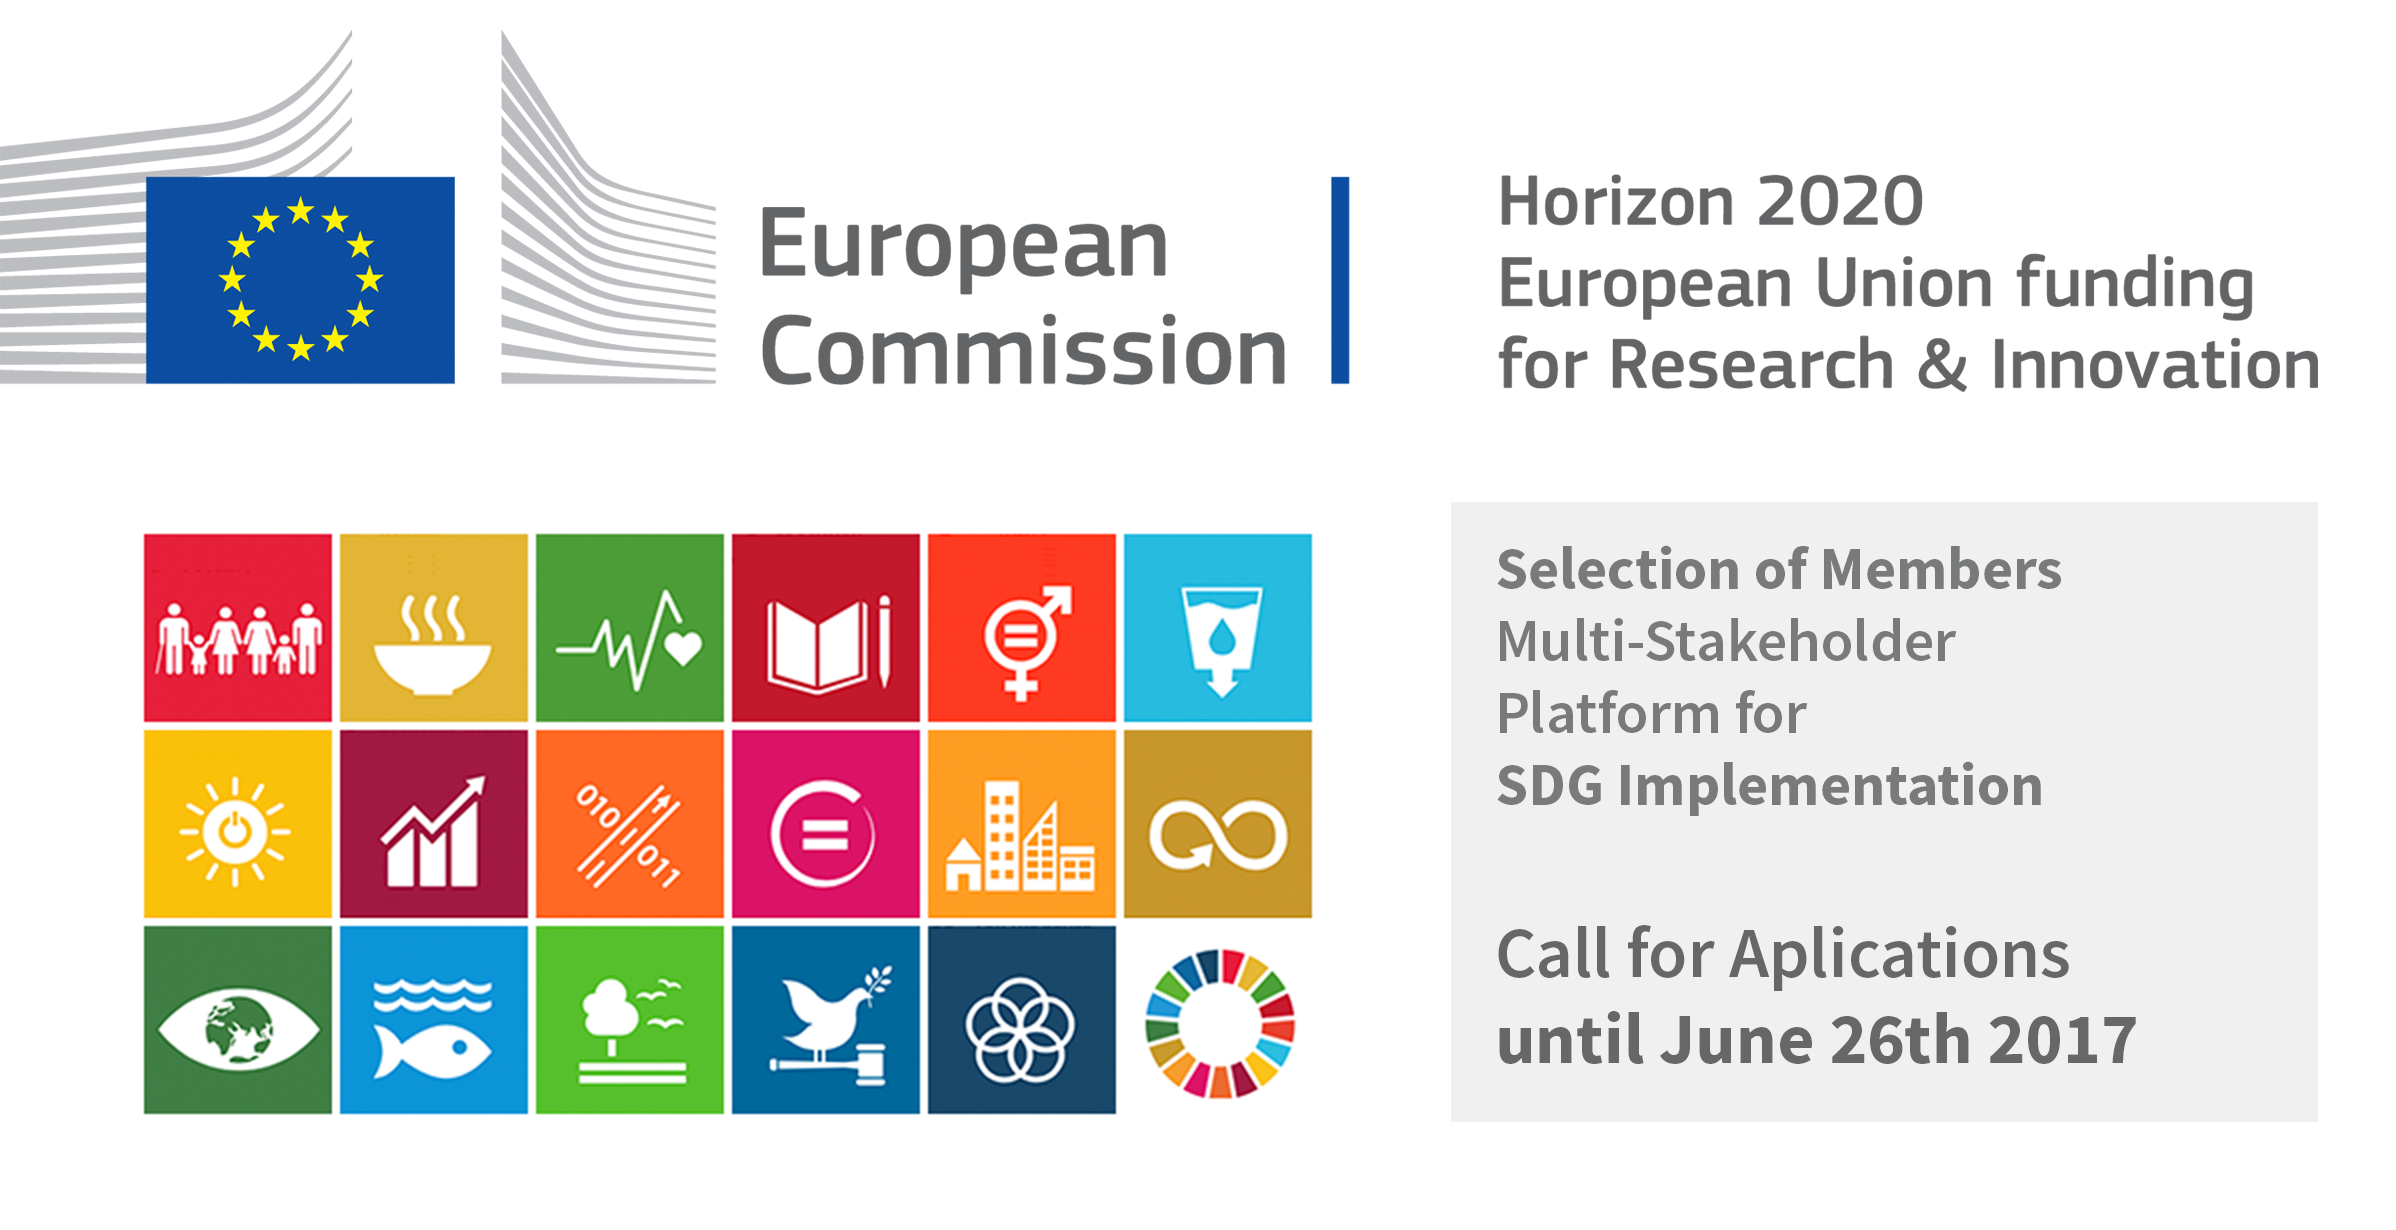 EU Call for Applications on SDG Implementation